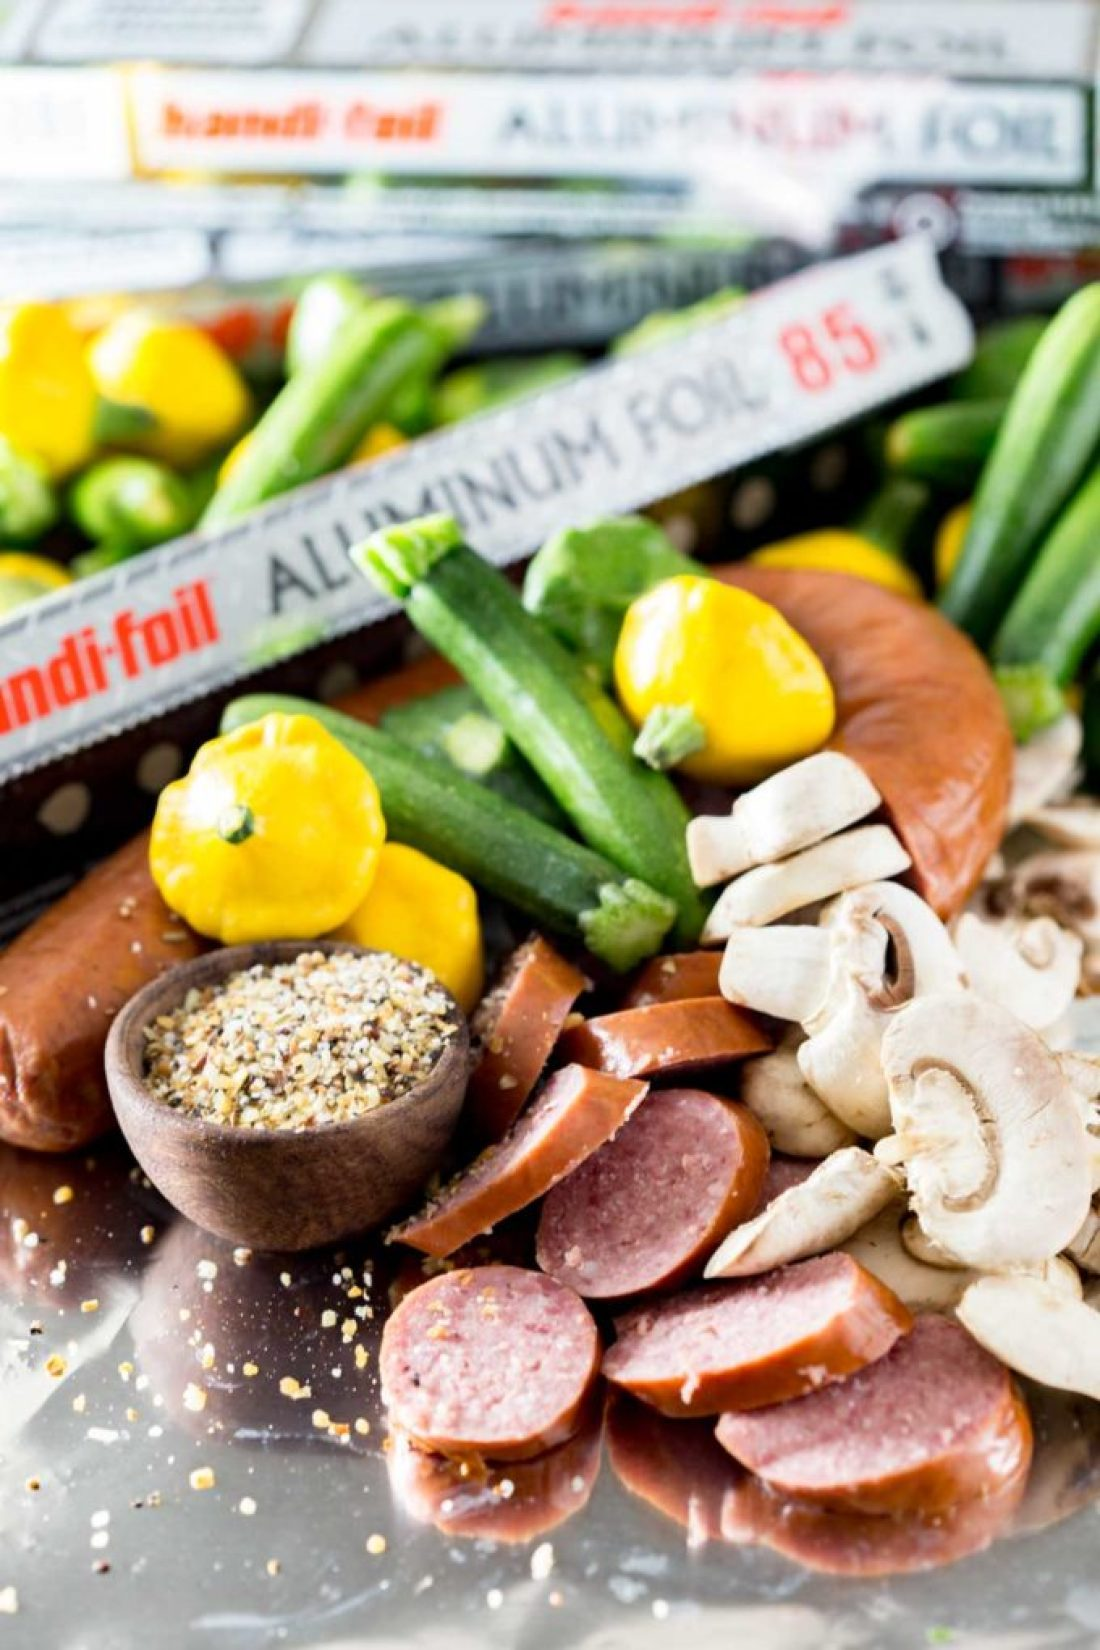 Kielbasa Recipes: Kielbasa sausage and fresh garden yellow squash and zucchini, and mushrooms, lightly seasoned, and cooked in Handi-Foil for the perfect, simple meal.